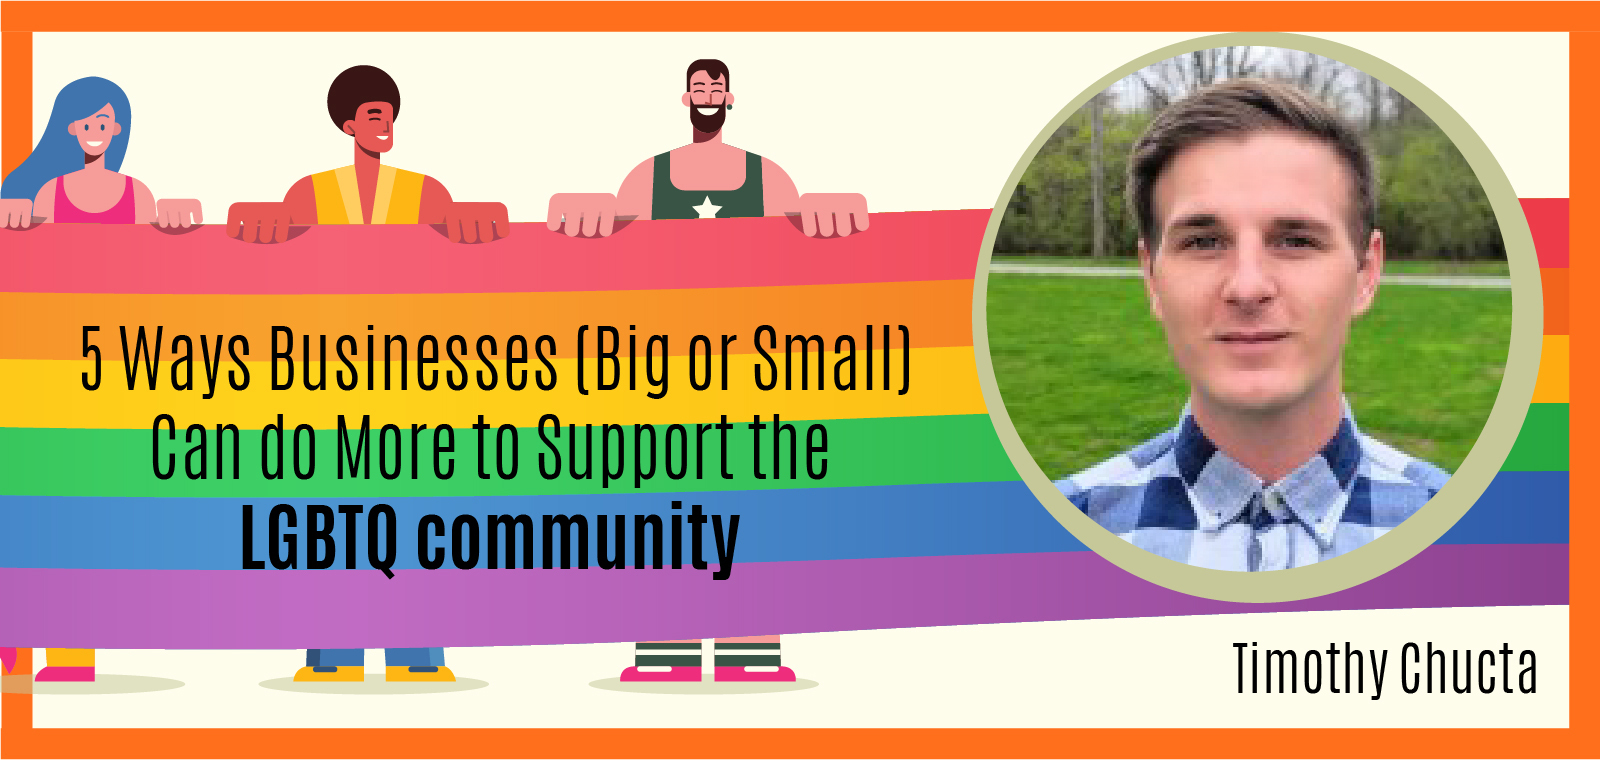 5 Ways Businesses, Big or Small, Can do More to Support the LGBTQ community